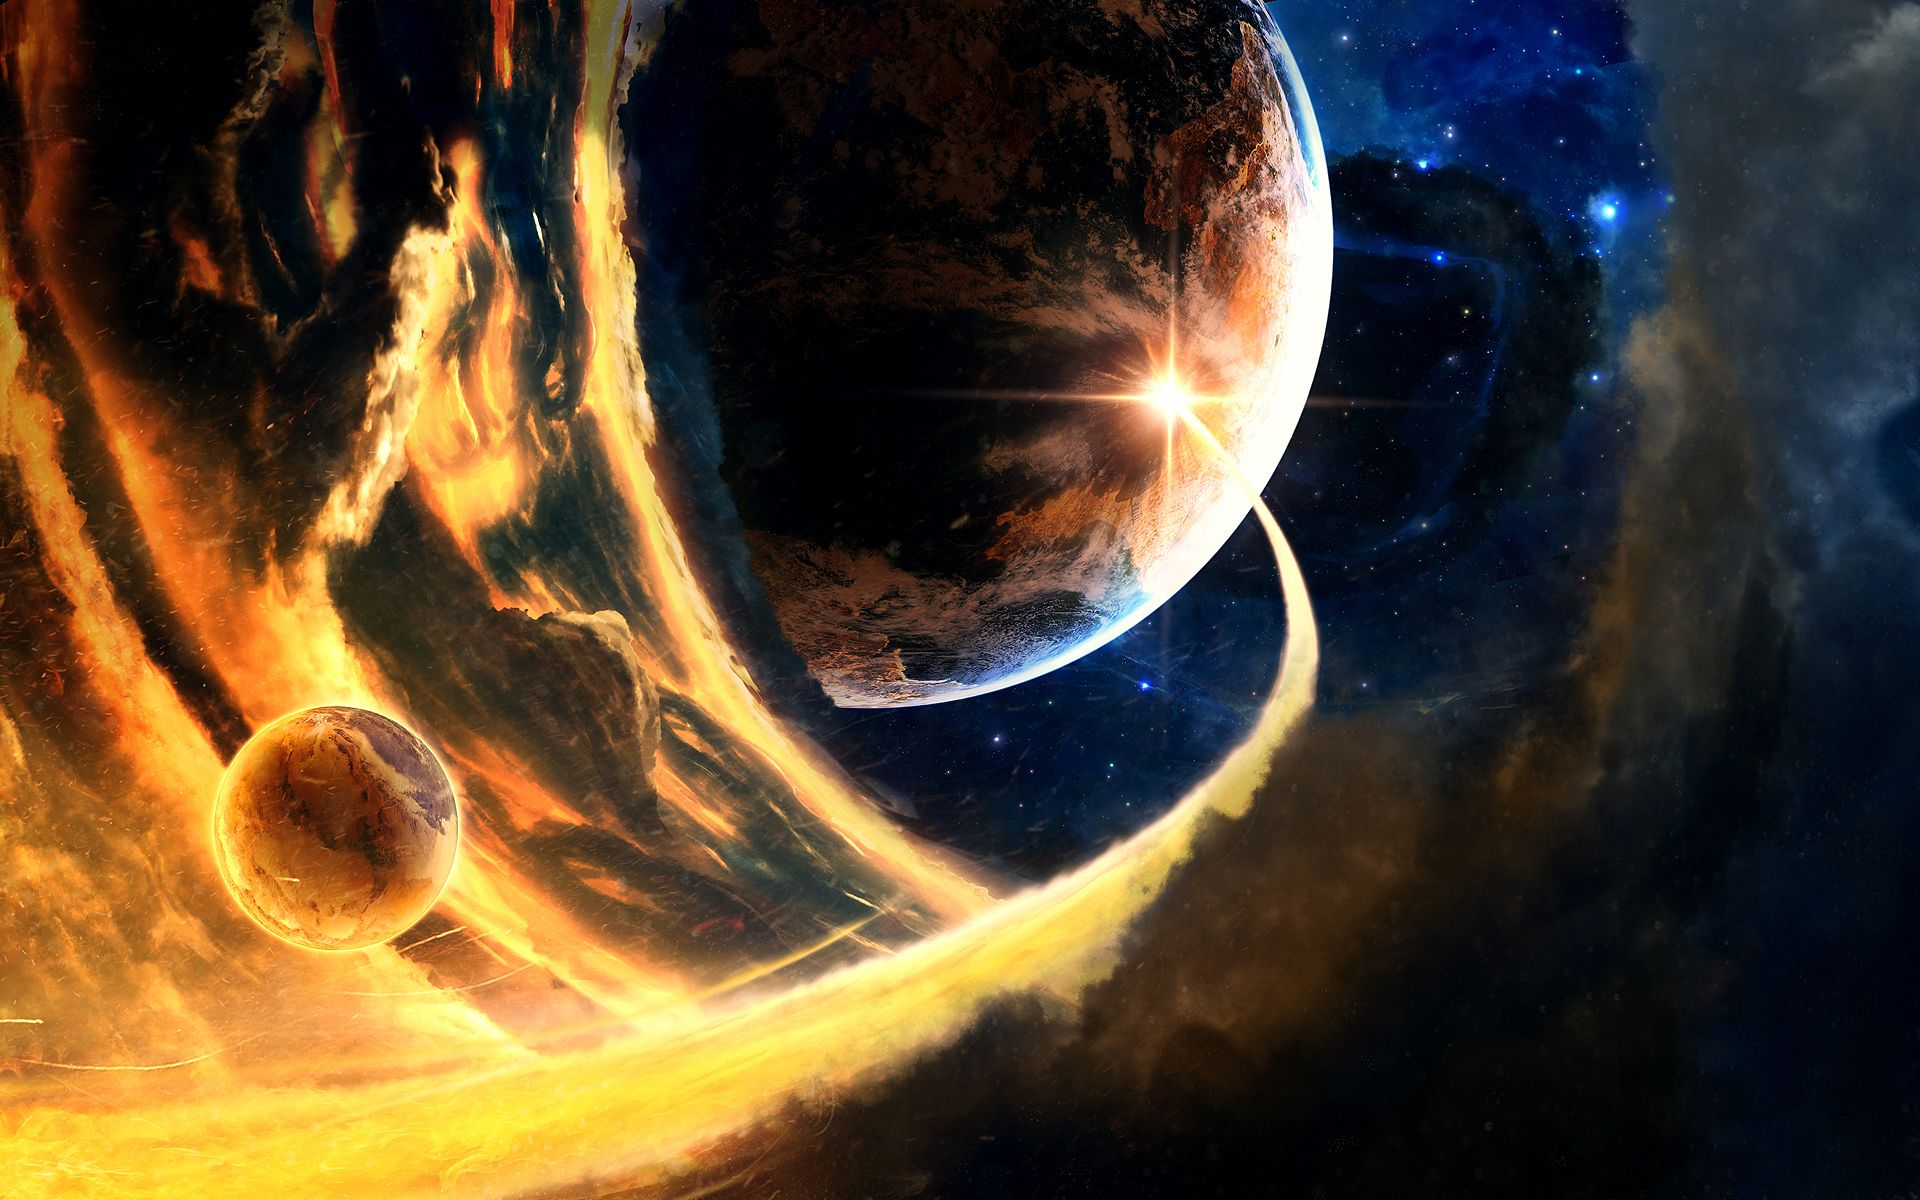 Astronomy Wallpaper Ideas – How to Find the best Astronomy Wallpaper